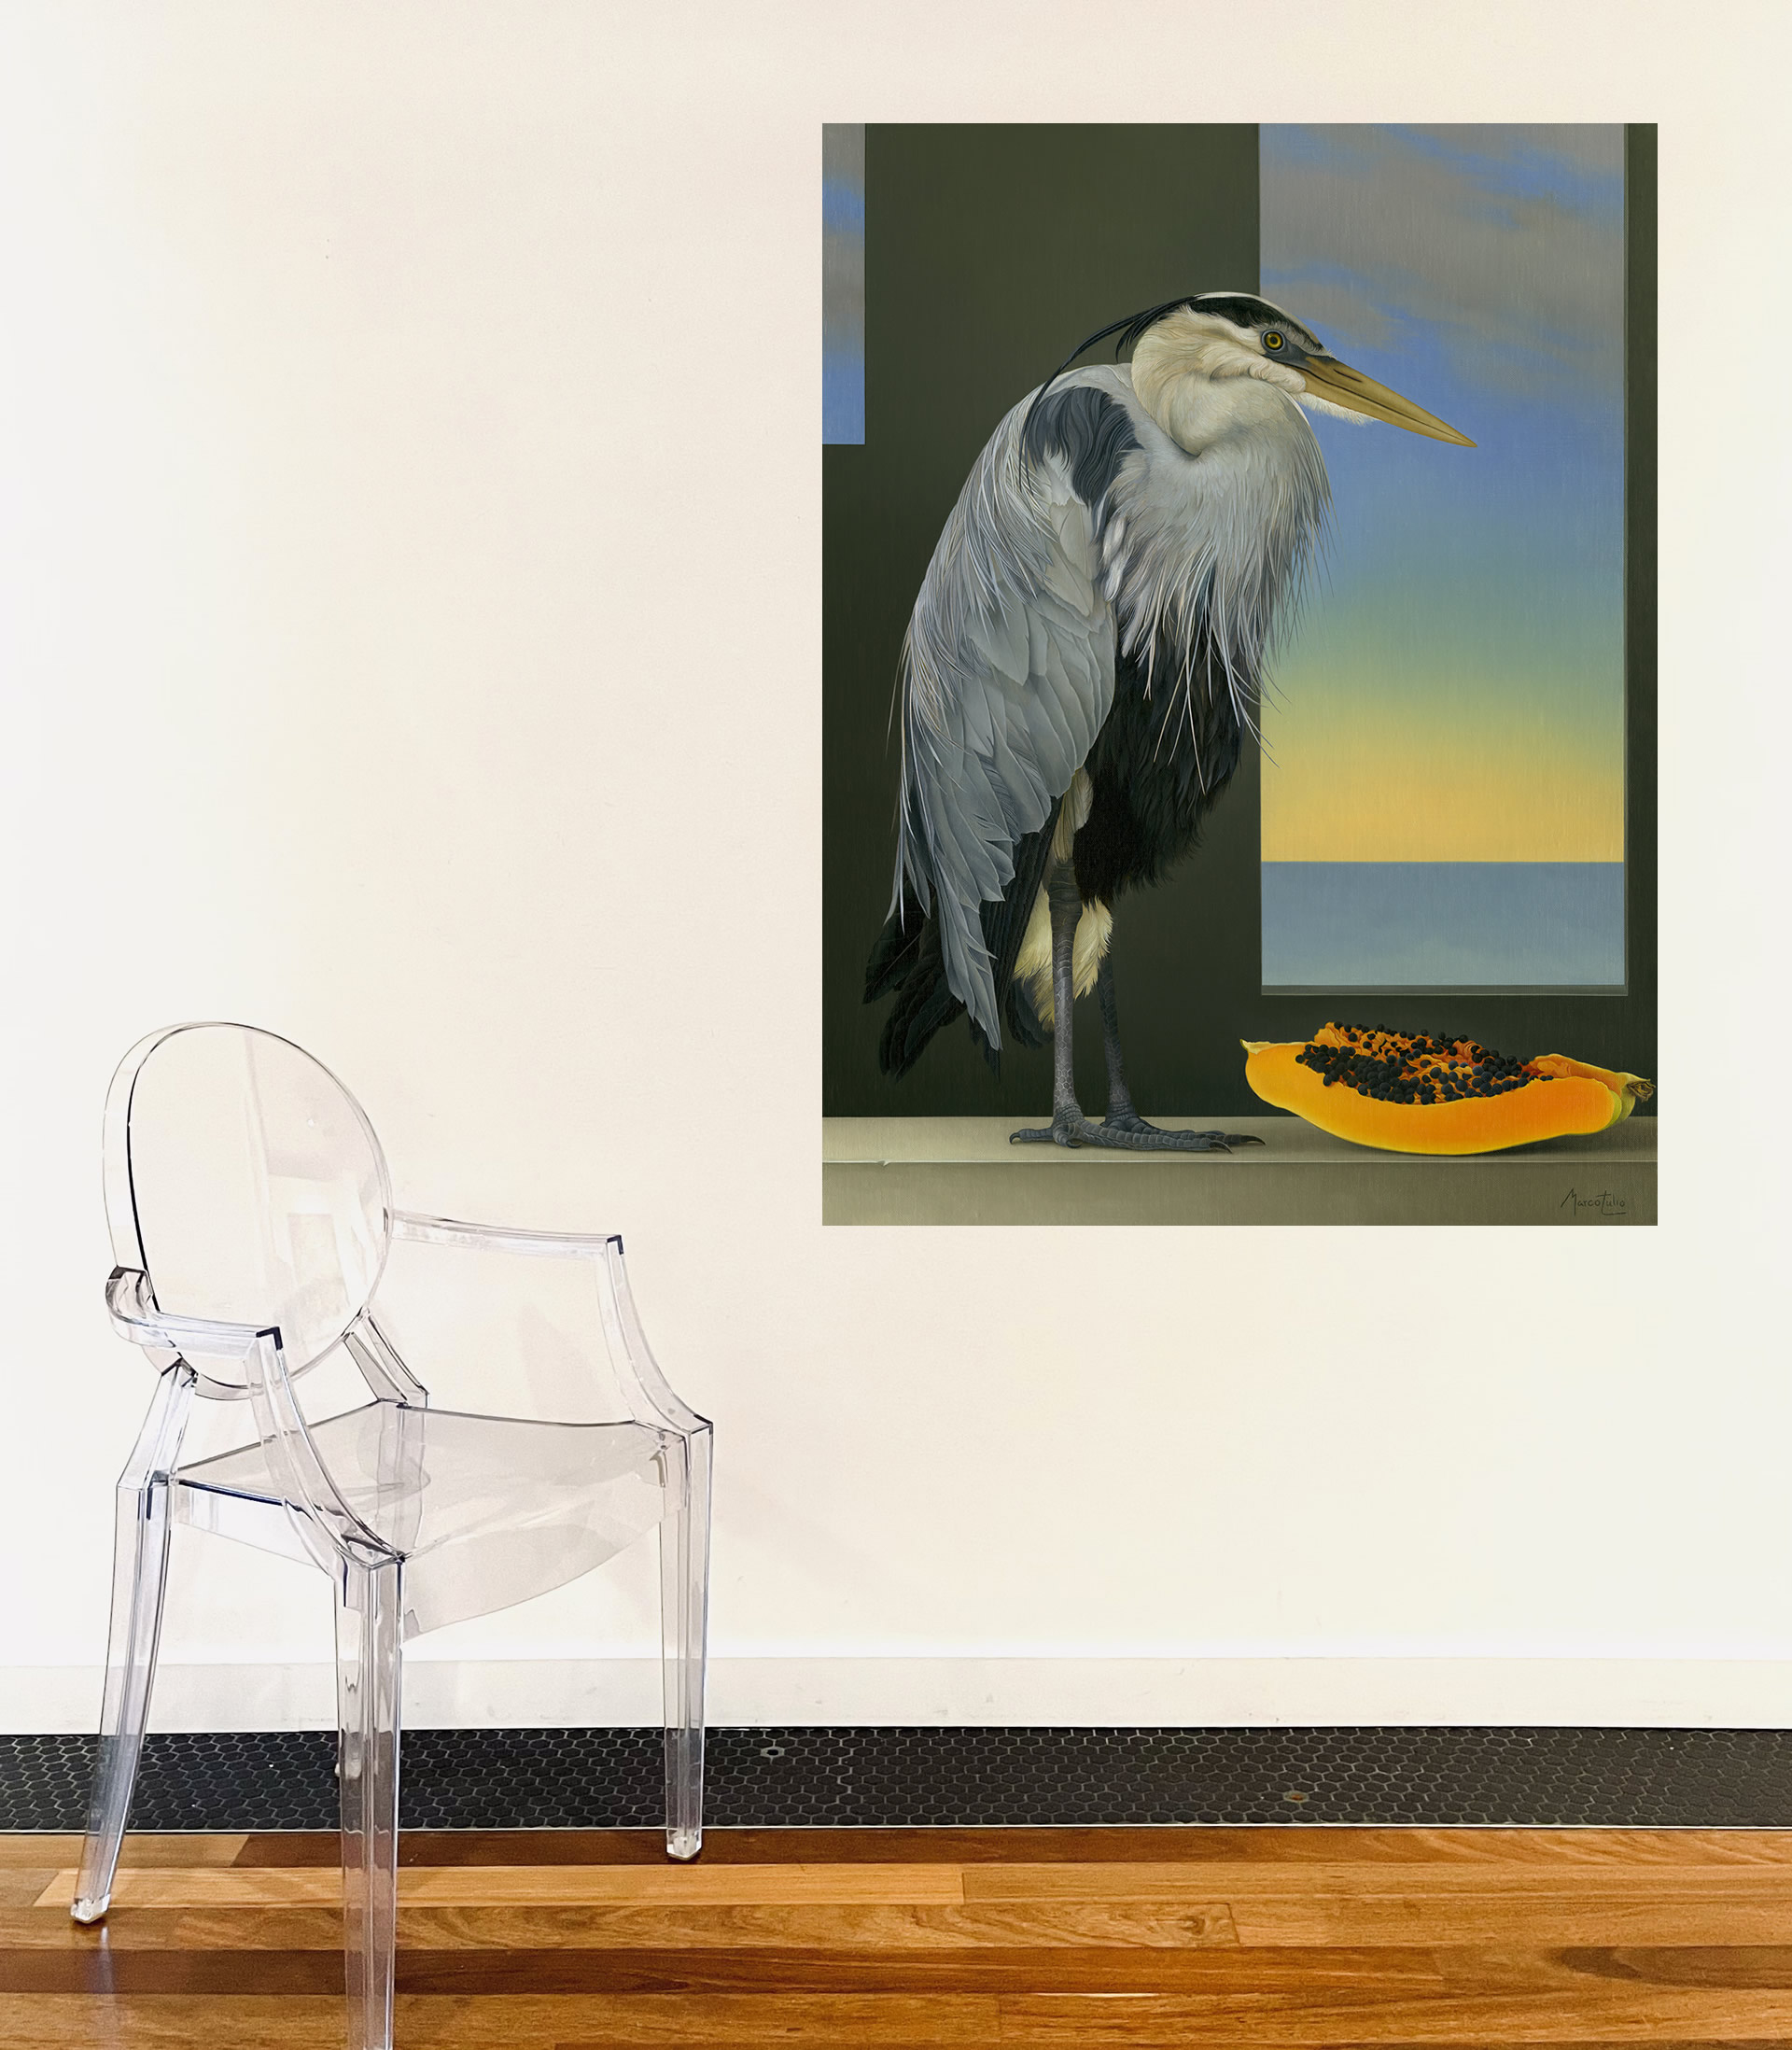 Marco-Tulio-Heron-42-18-Online-Art-Galleries-on-the-wall